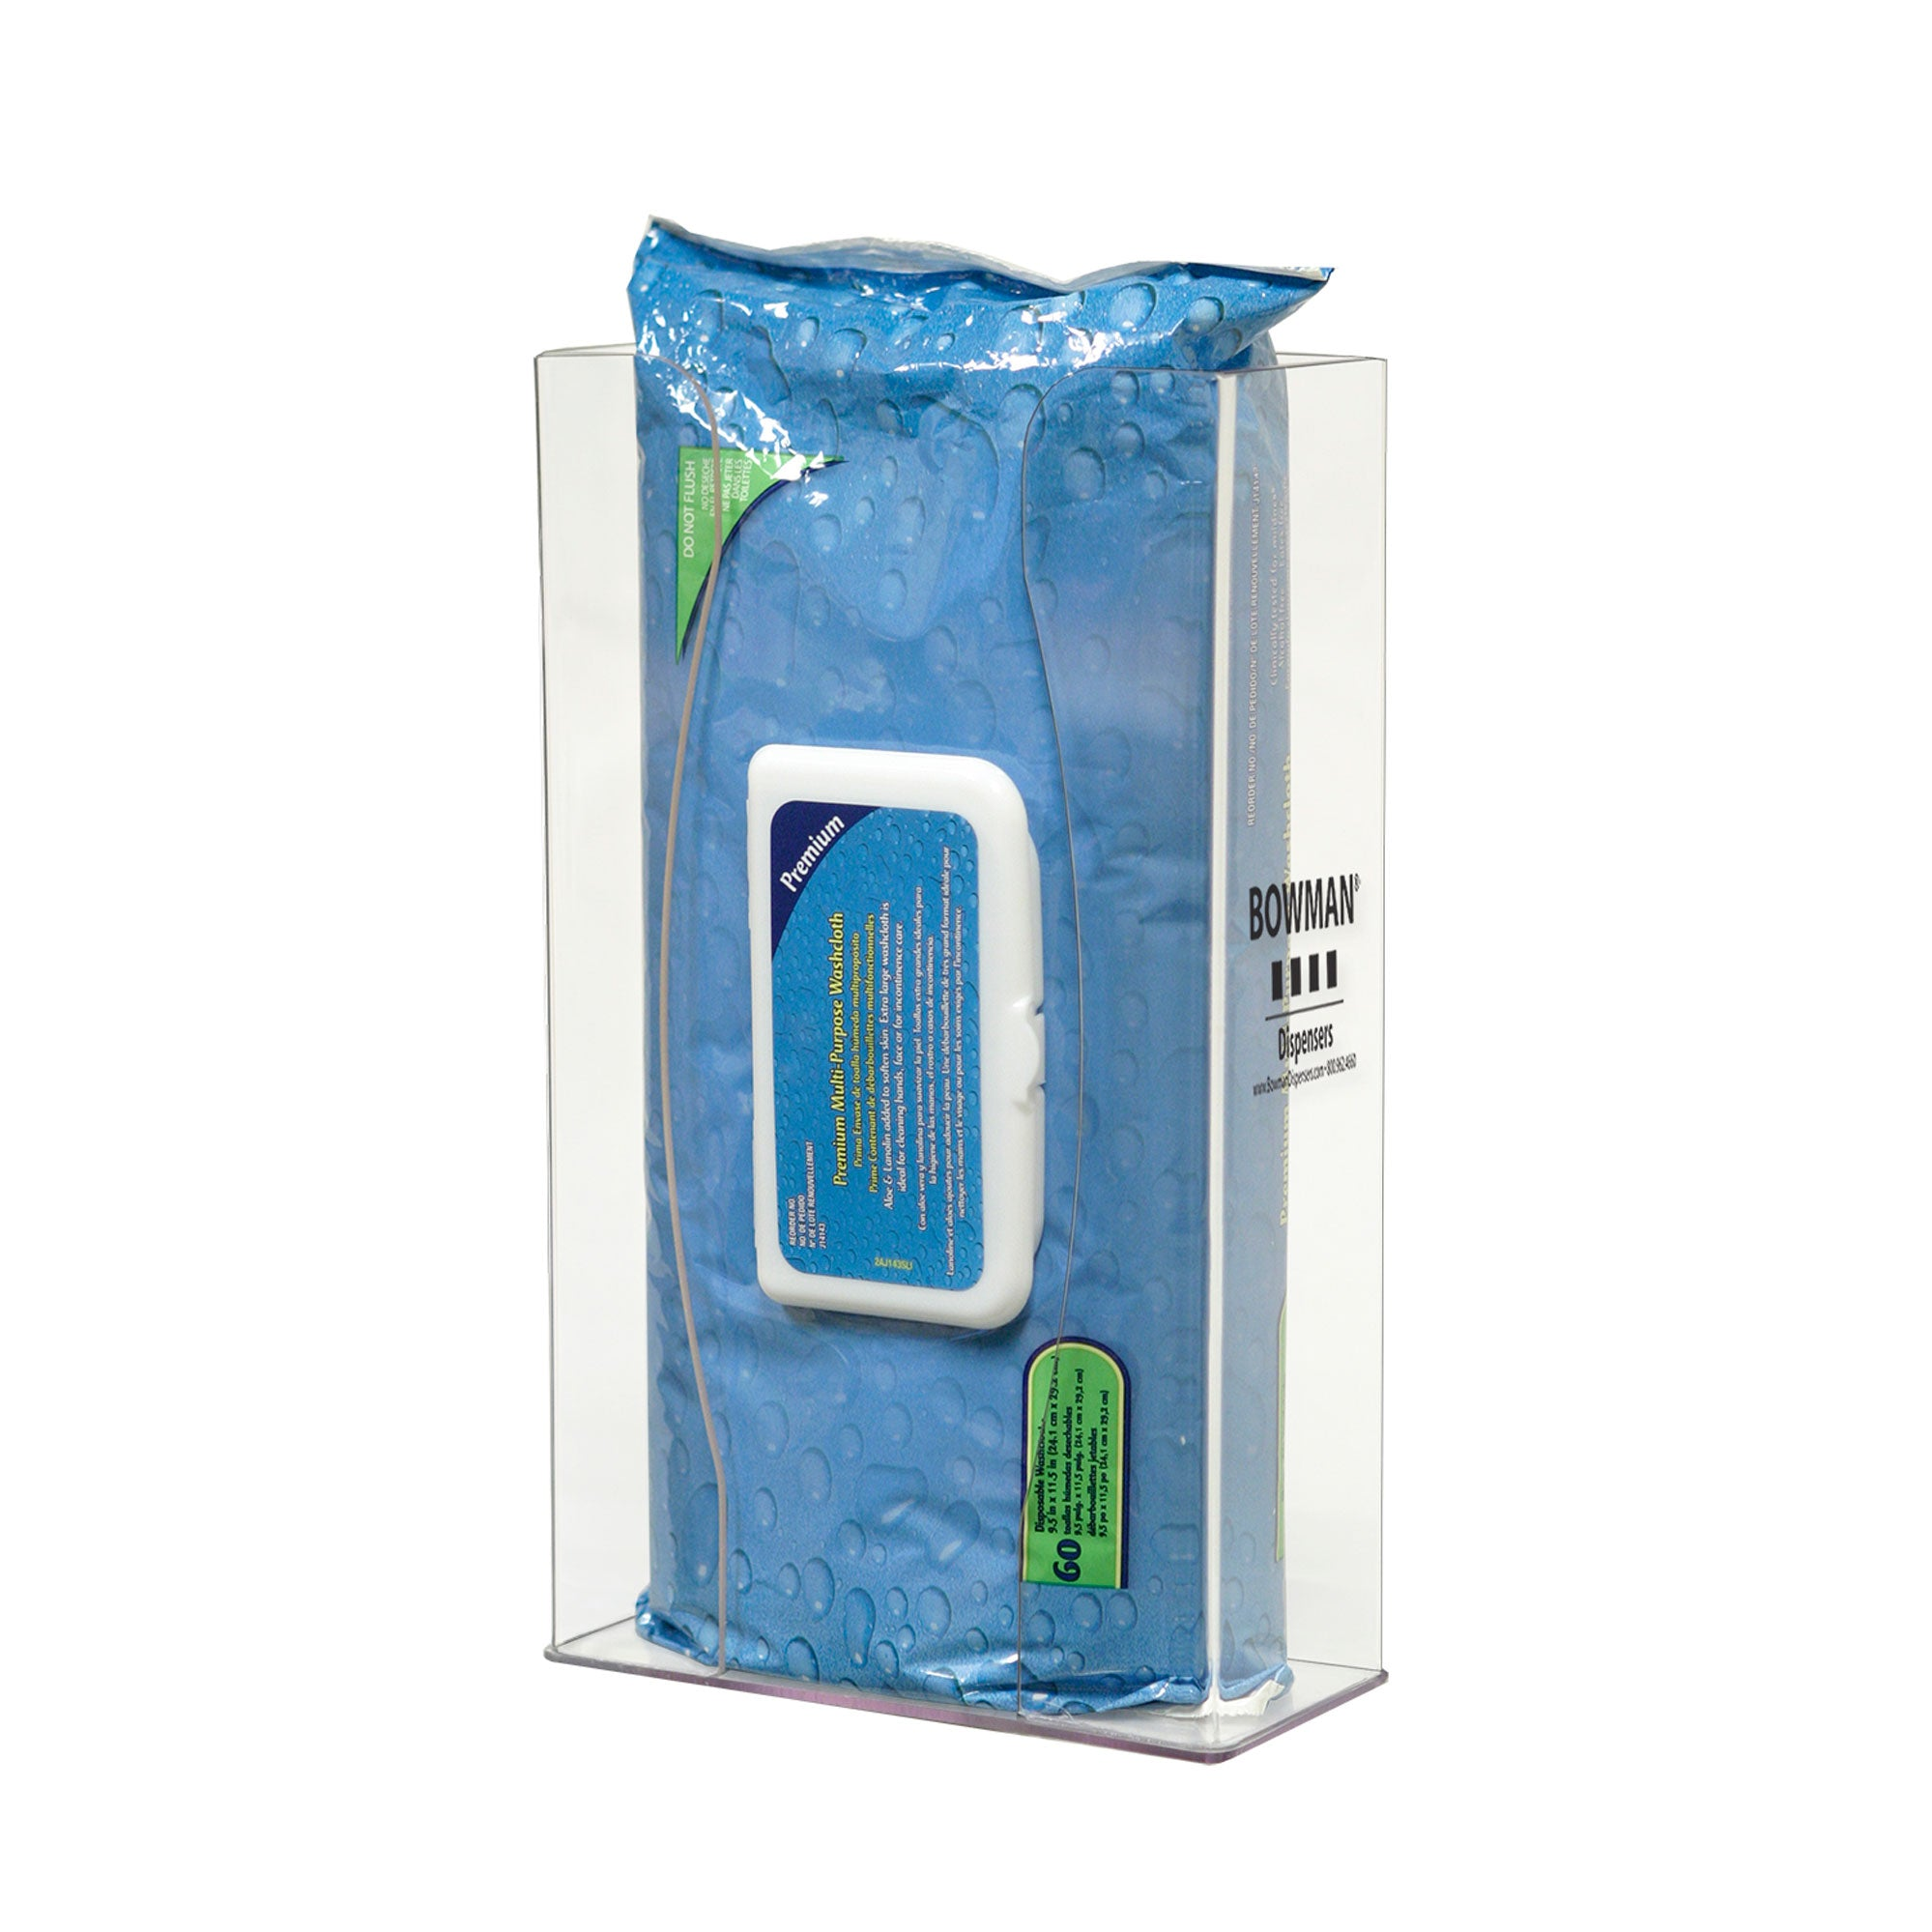 Bowman PETG Tall Thick Personal Wipe Dispenser